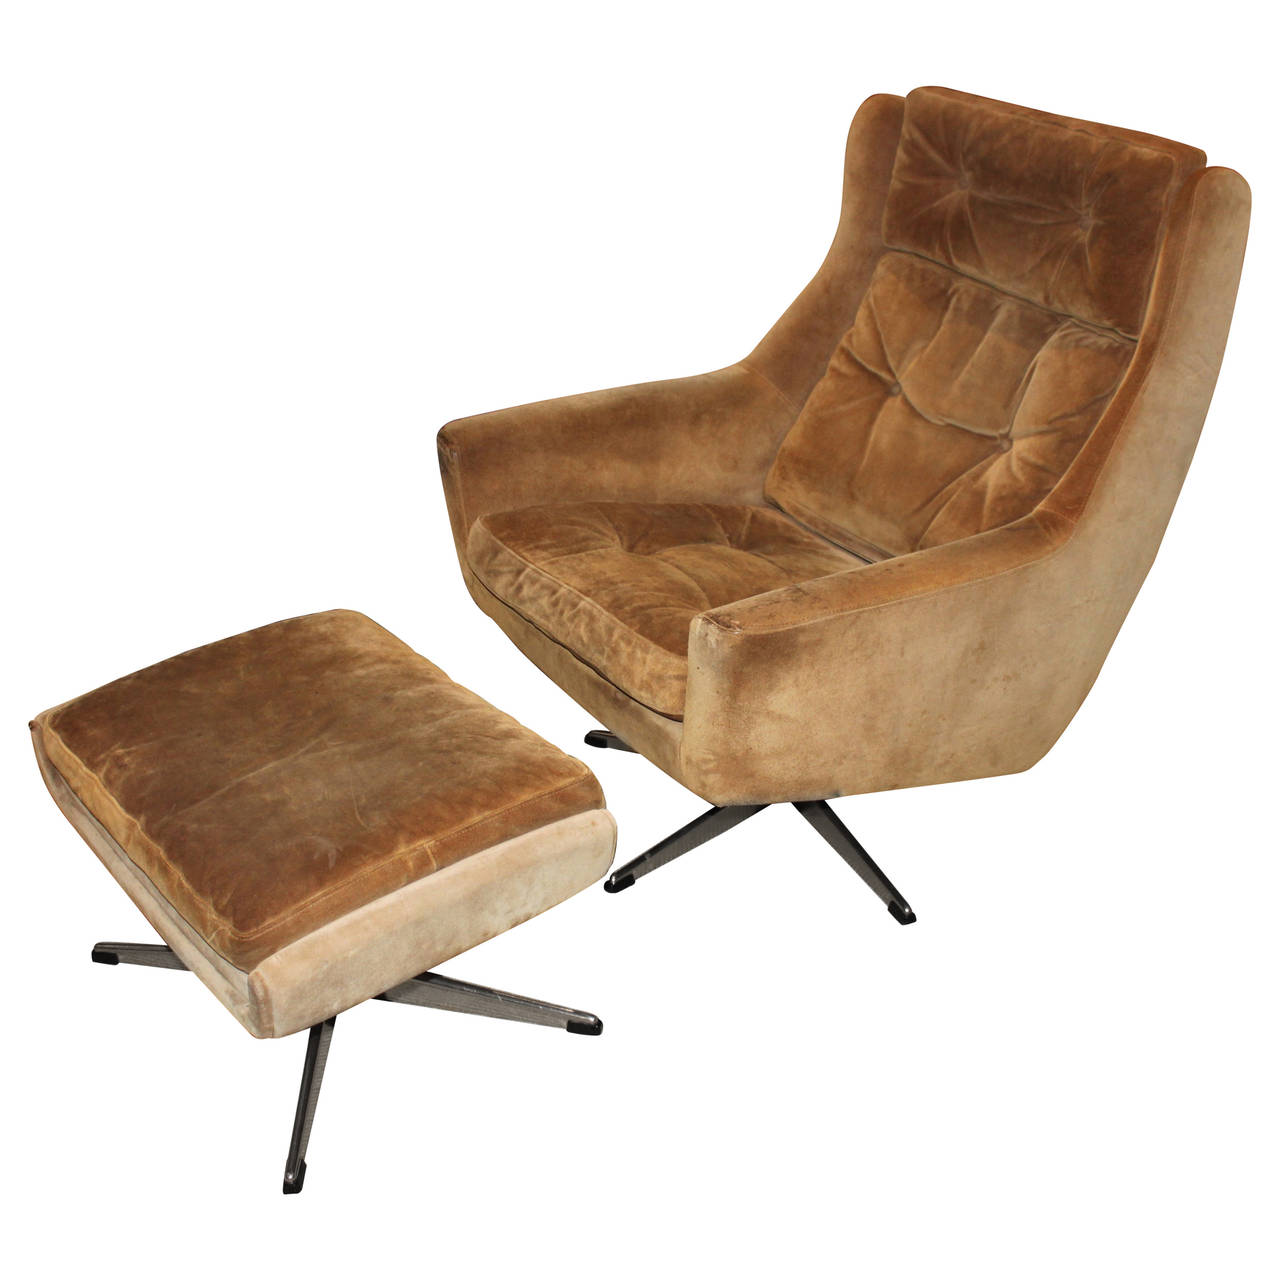 Overman Lounge Chair photo - 6